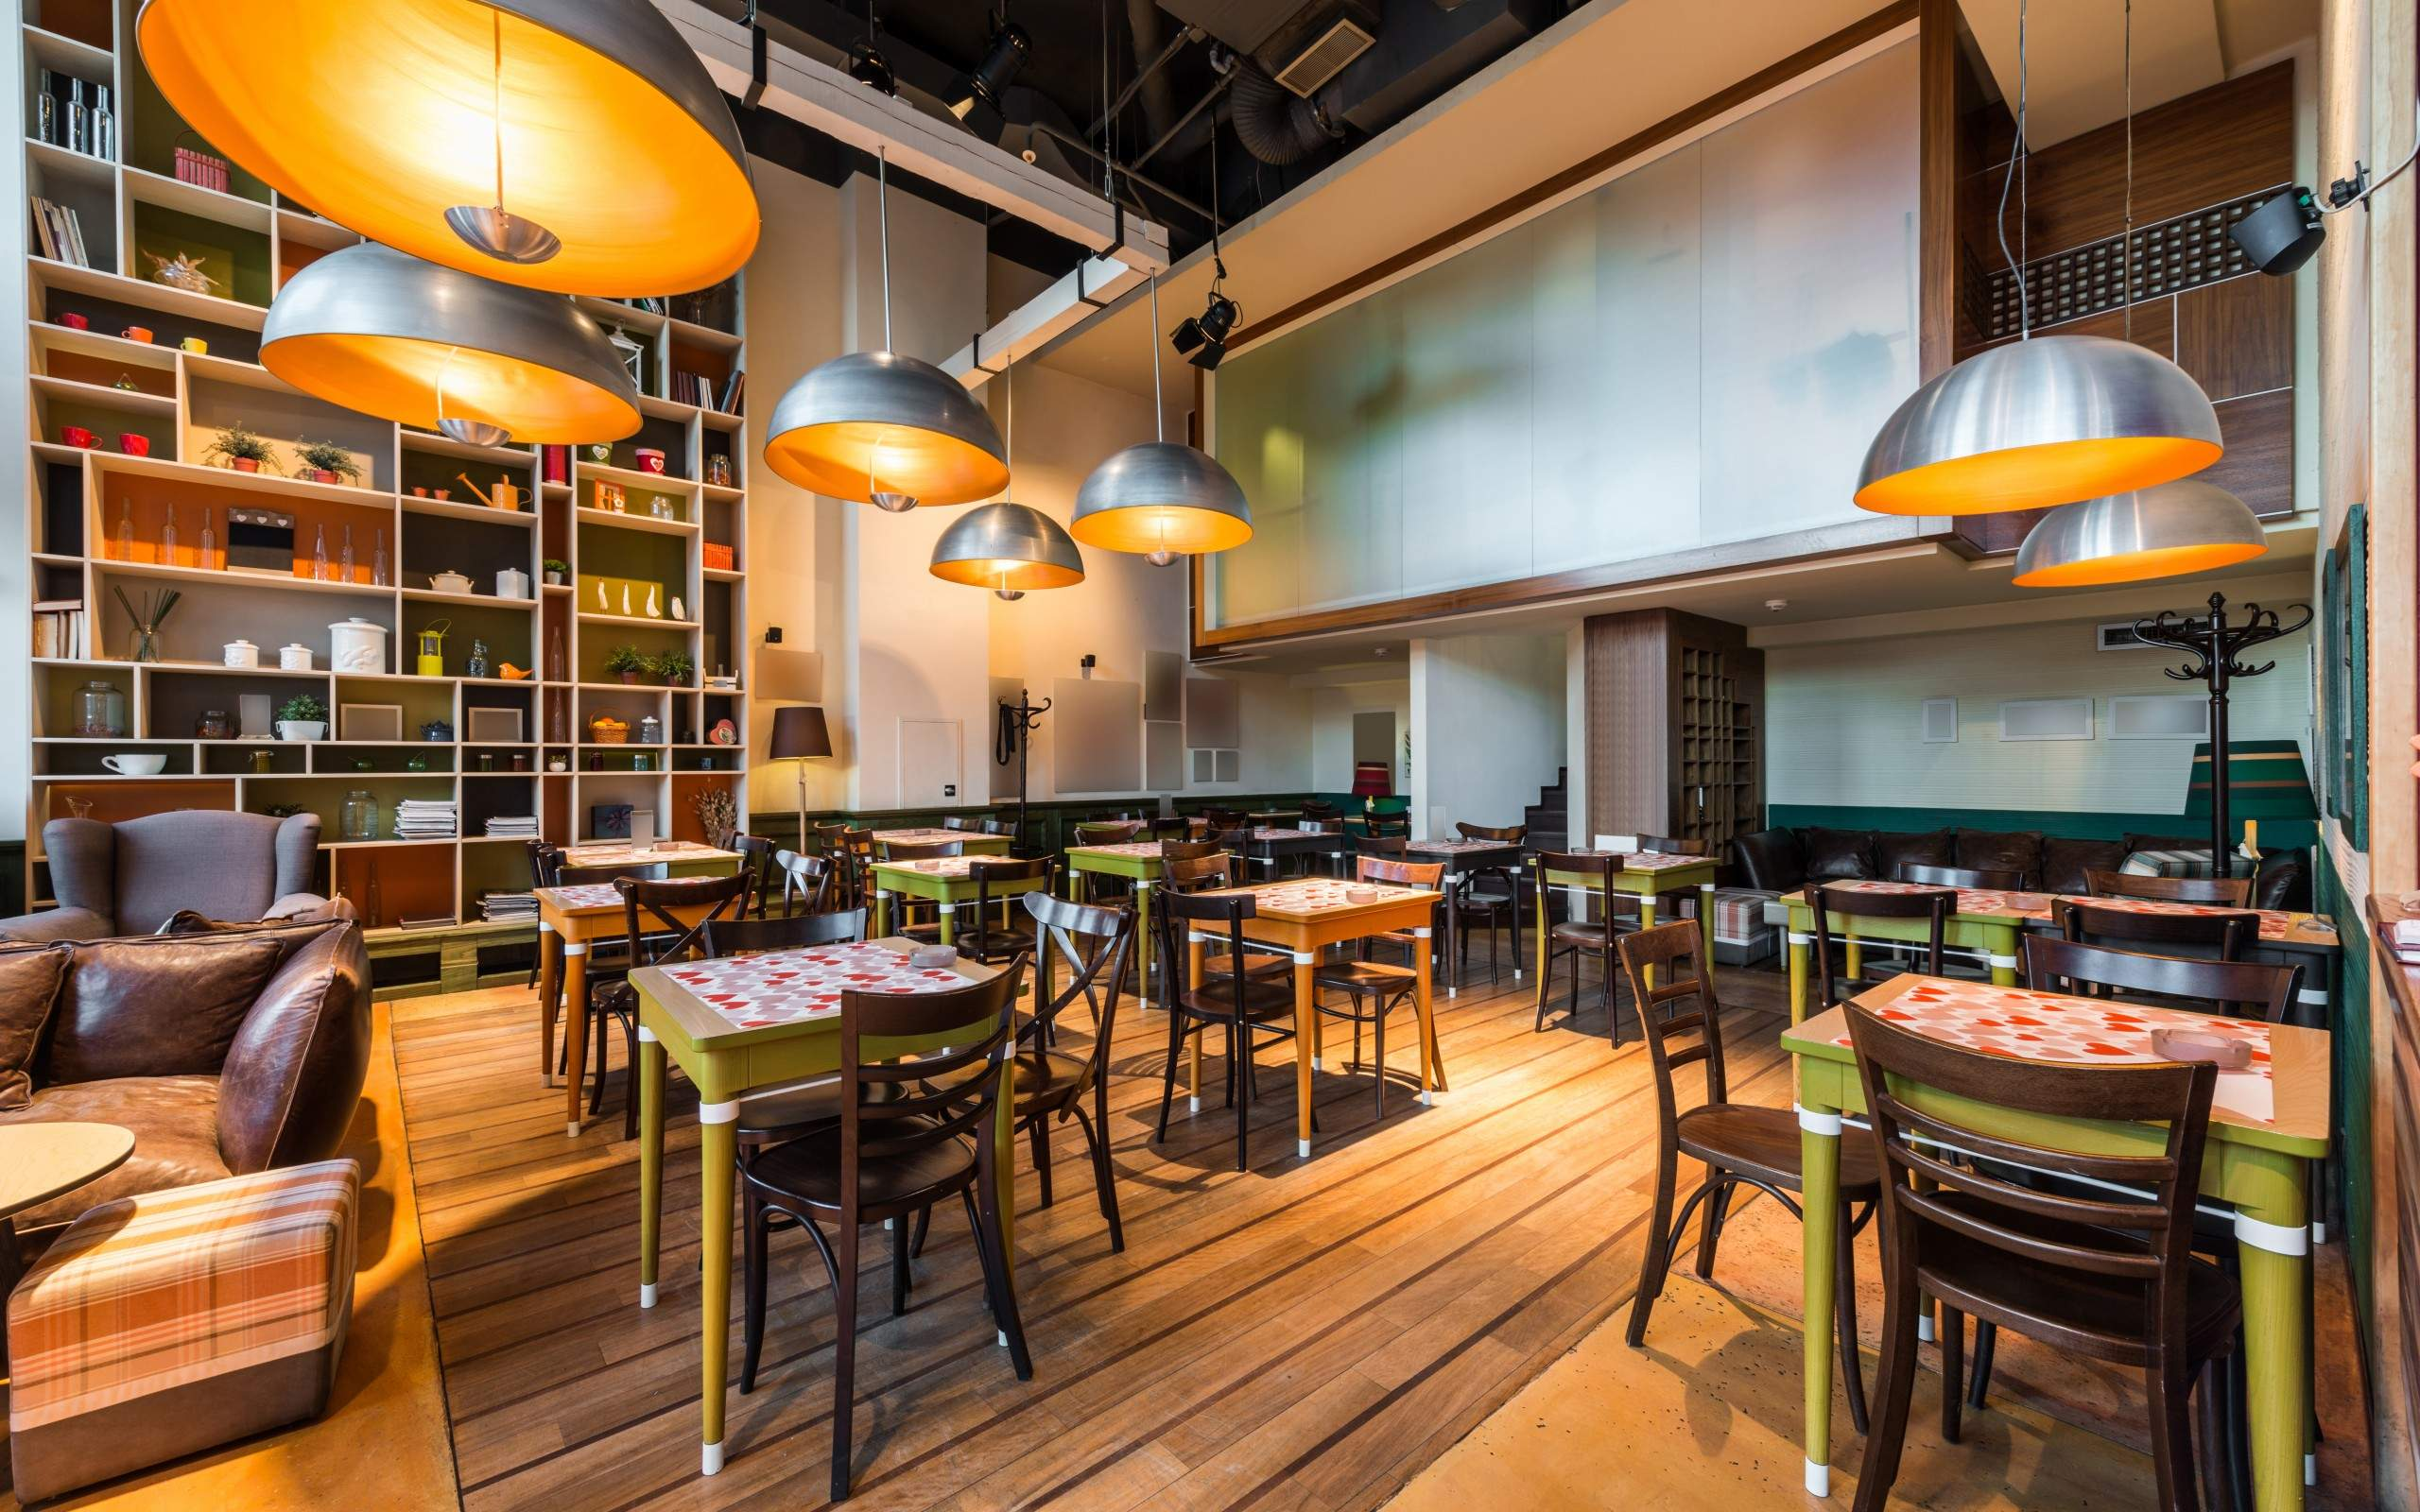 Download restaurant wallpaper hd gallery for Ristoranti design